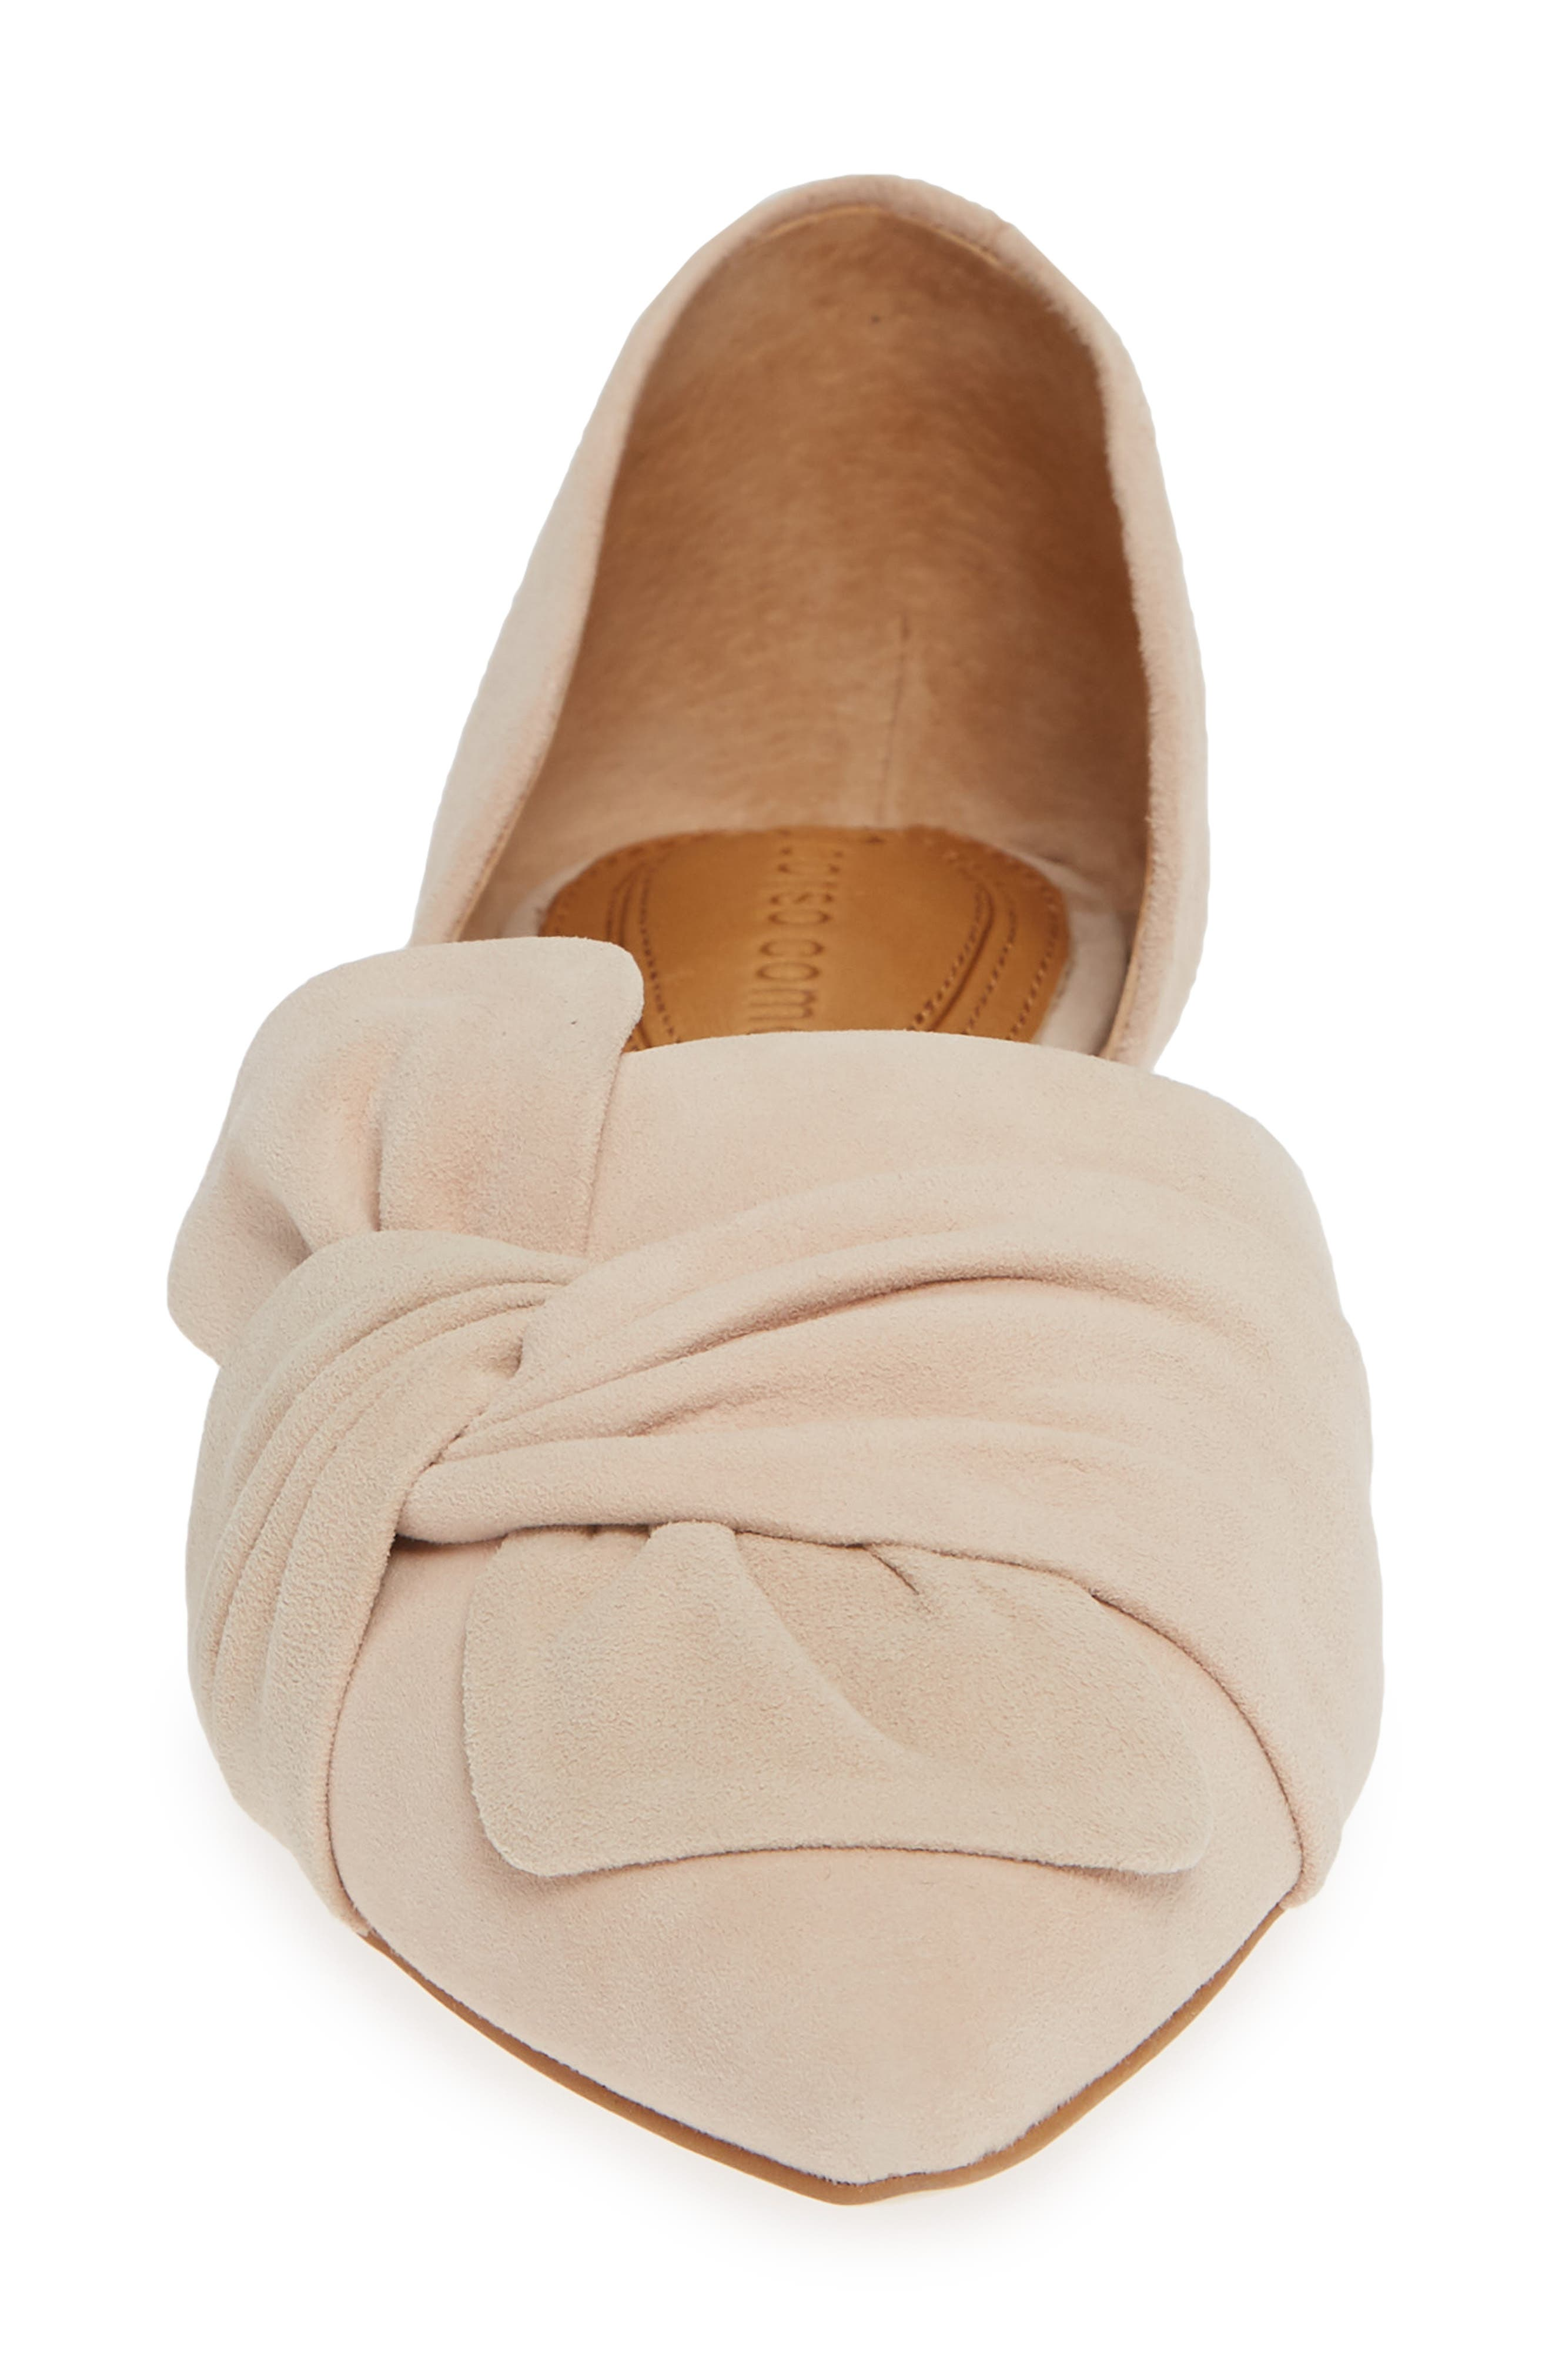 Mollie d'Orsay Flat,                             Alternate thumbnail 6, color,                             Nude Suede